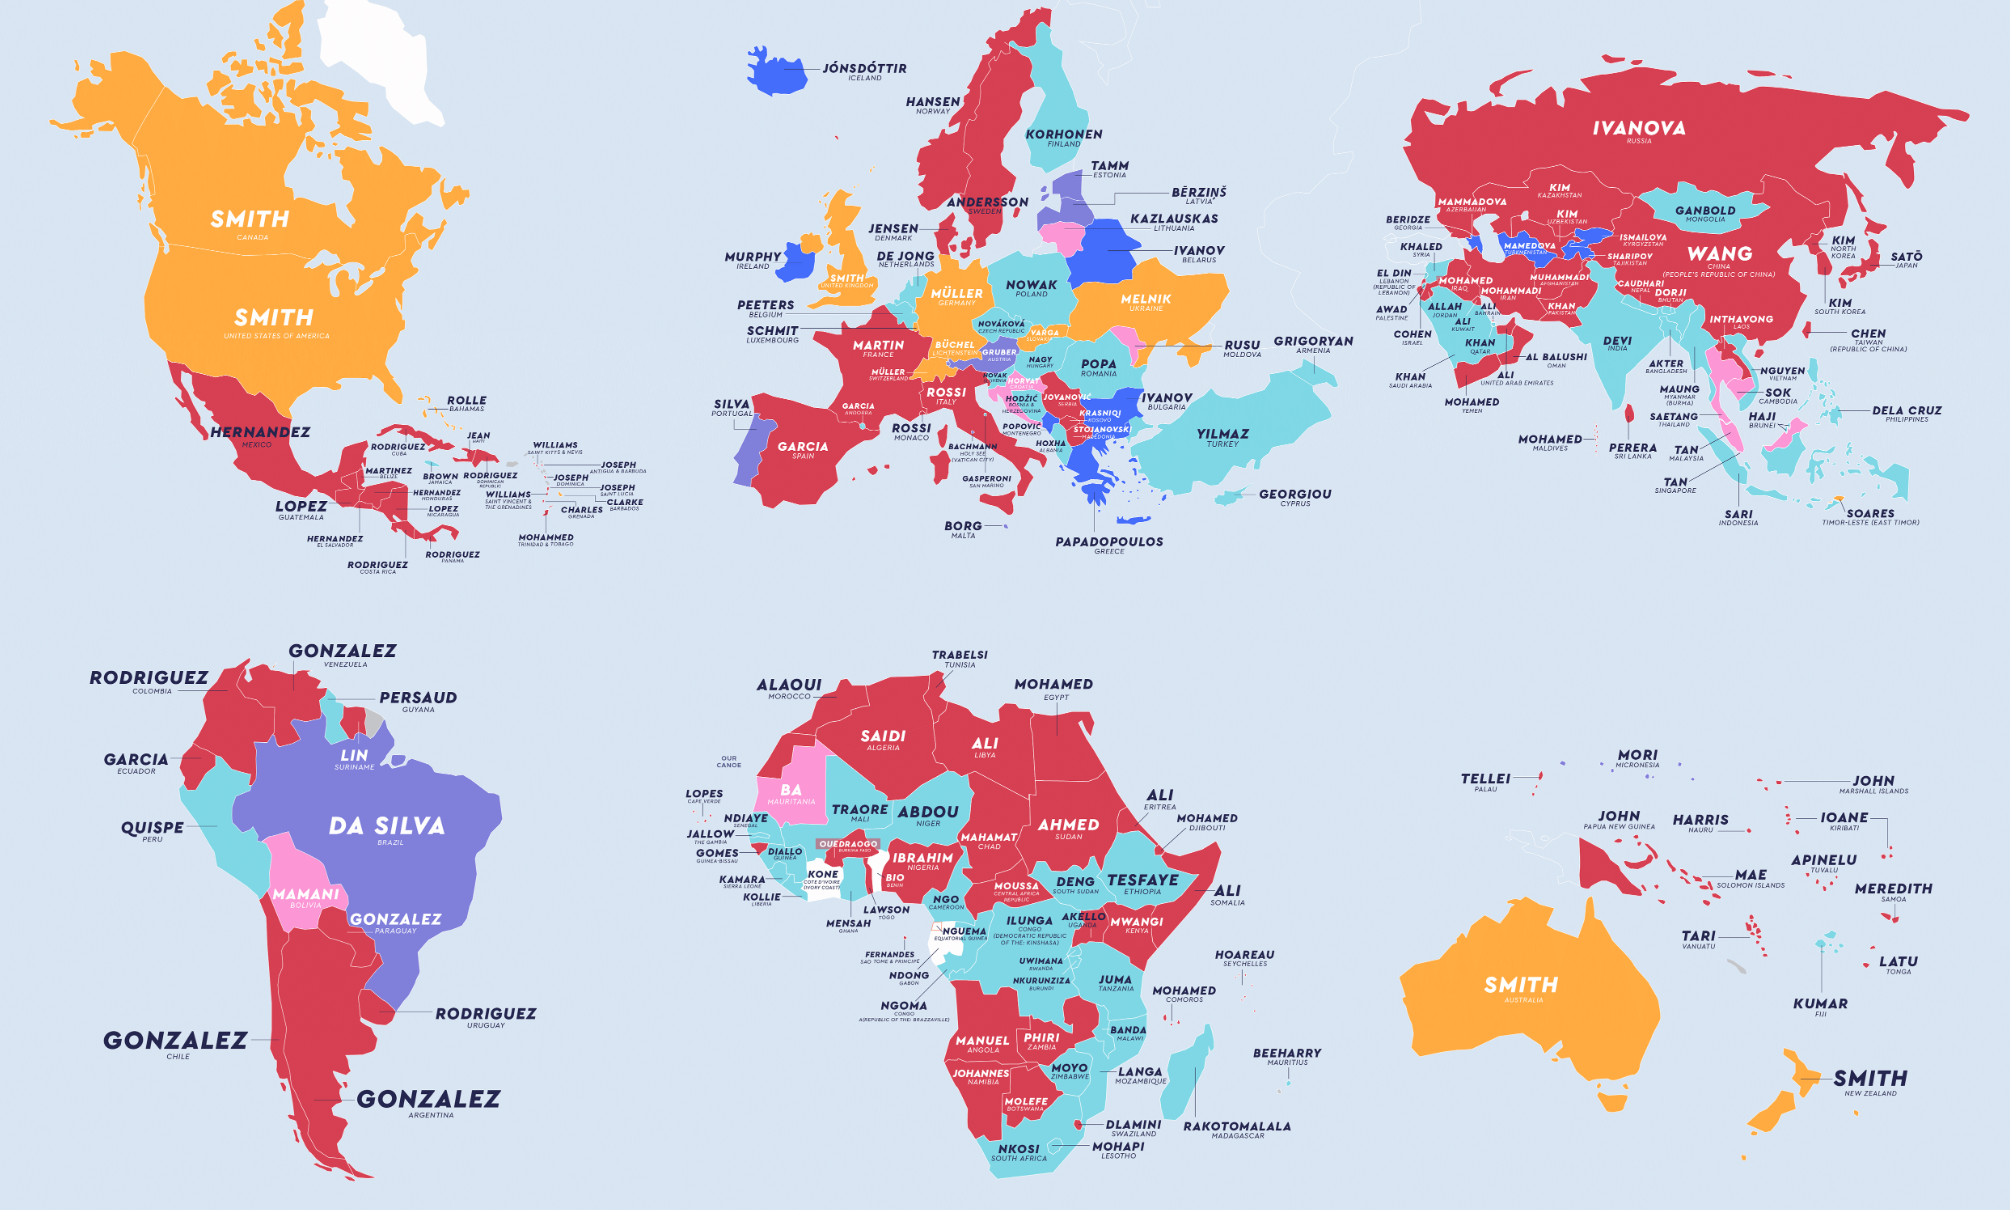 The Most Common Last Names In Every Country, Mapped